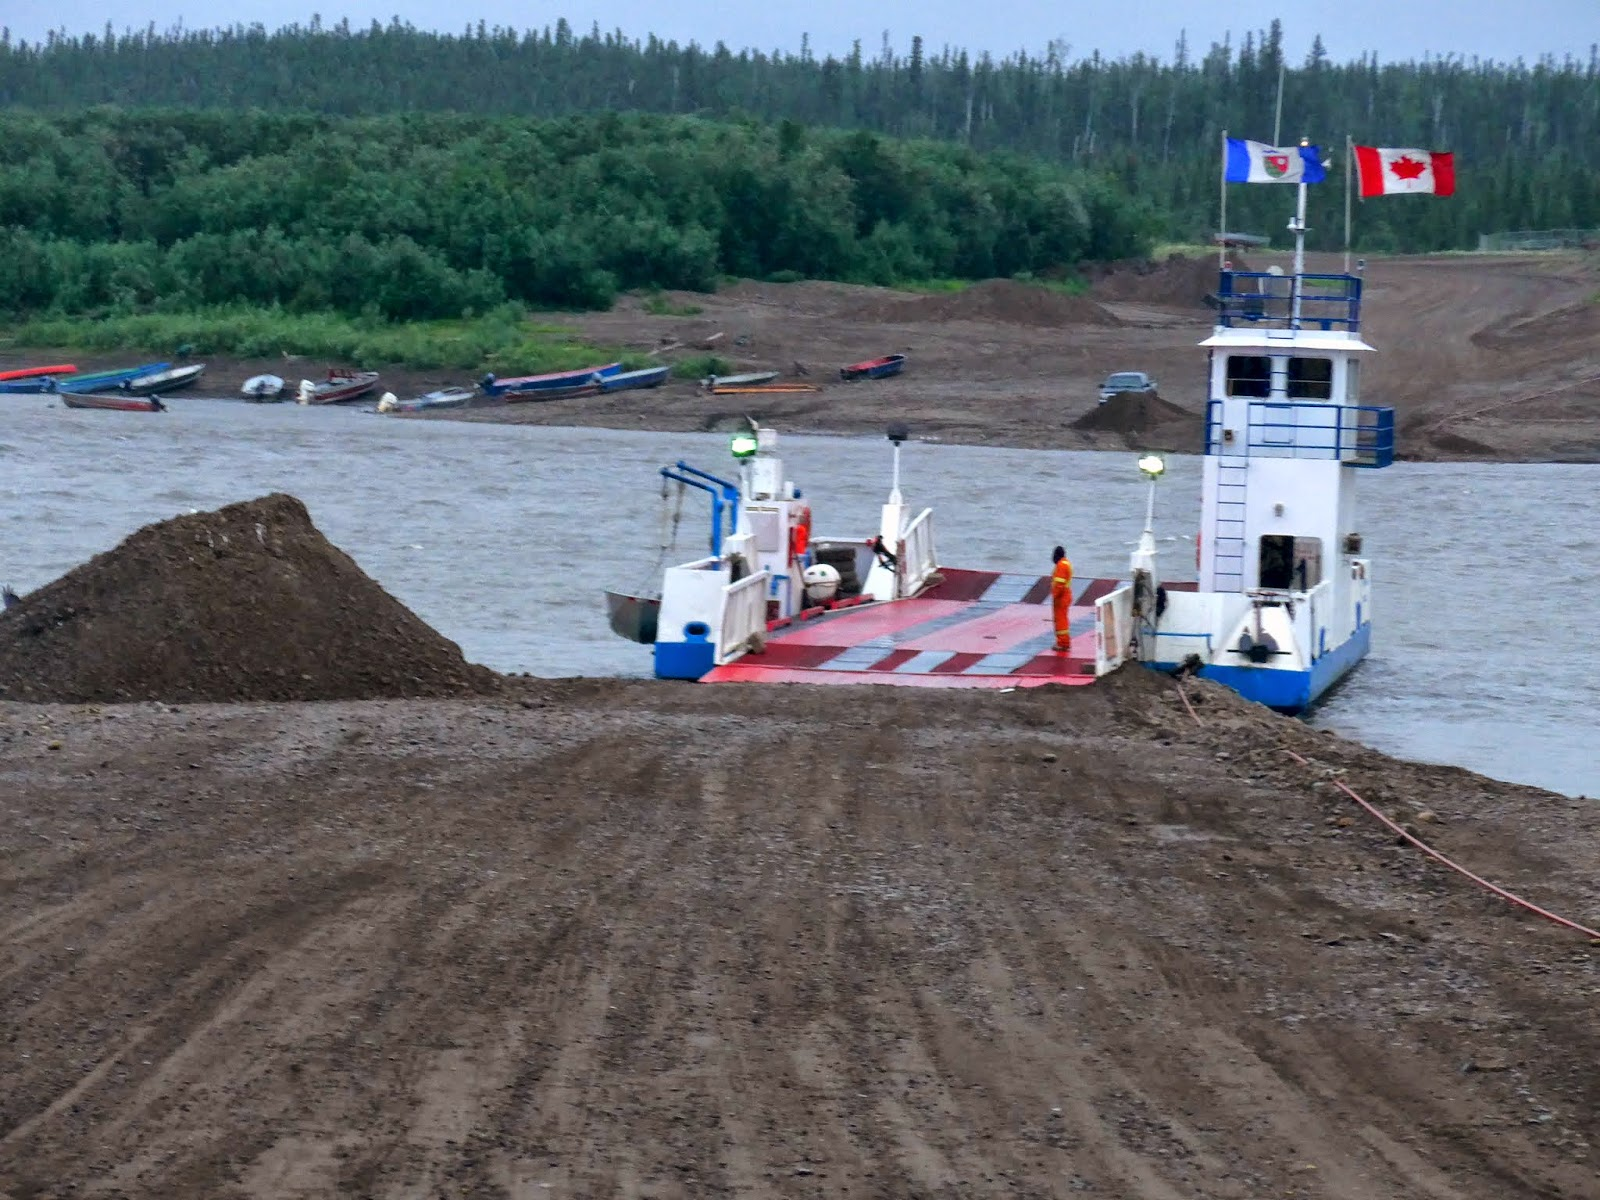 Ferry crossing over Peel River